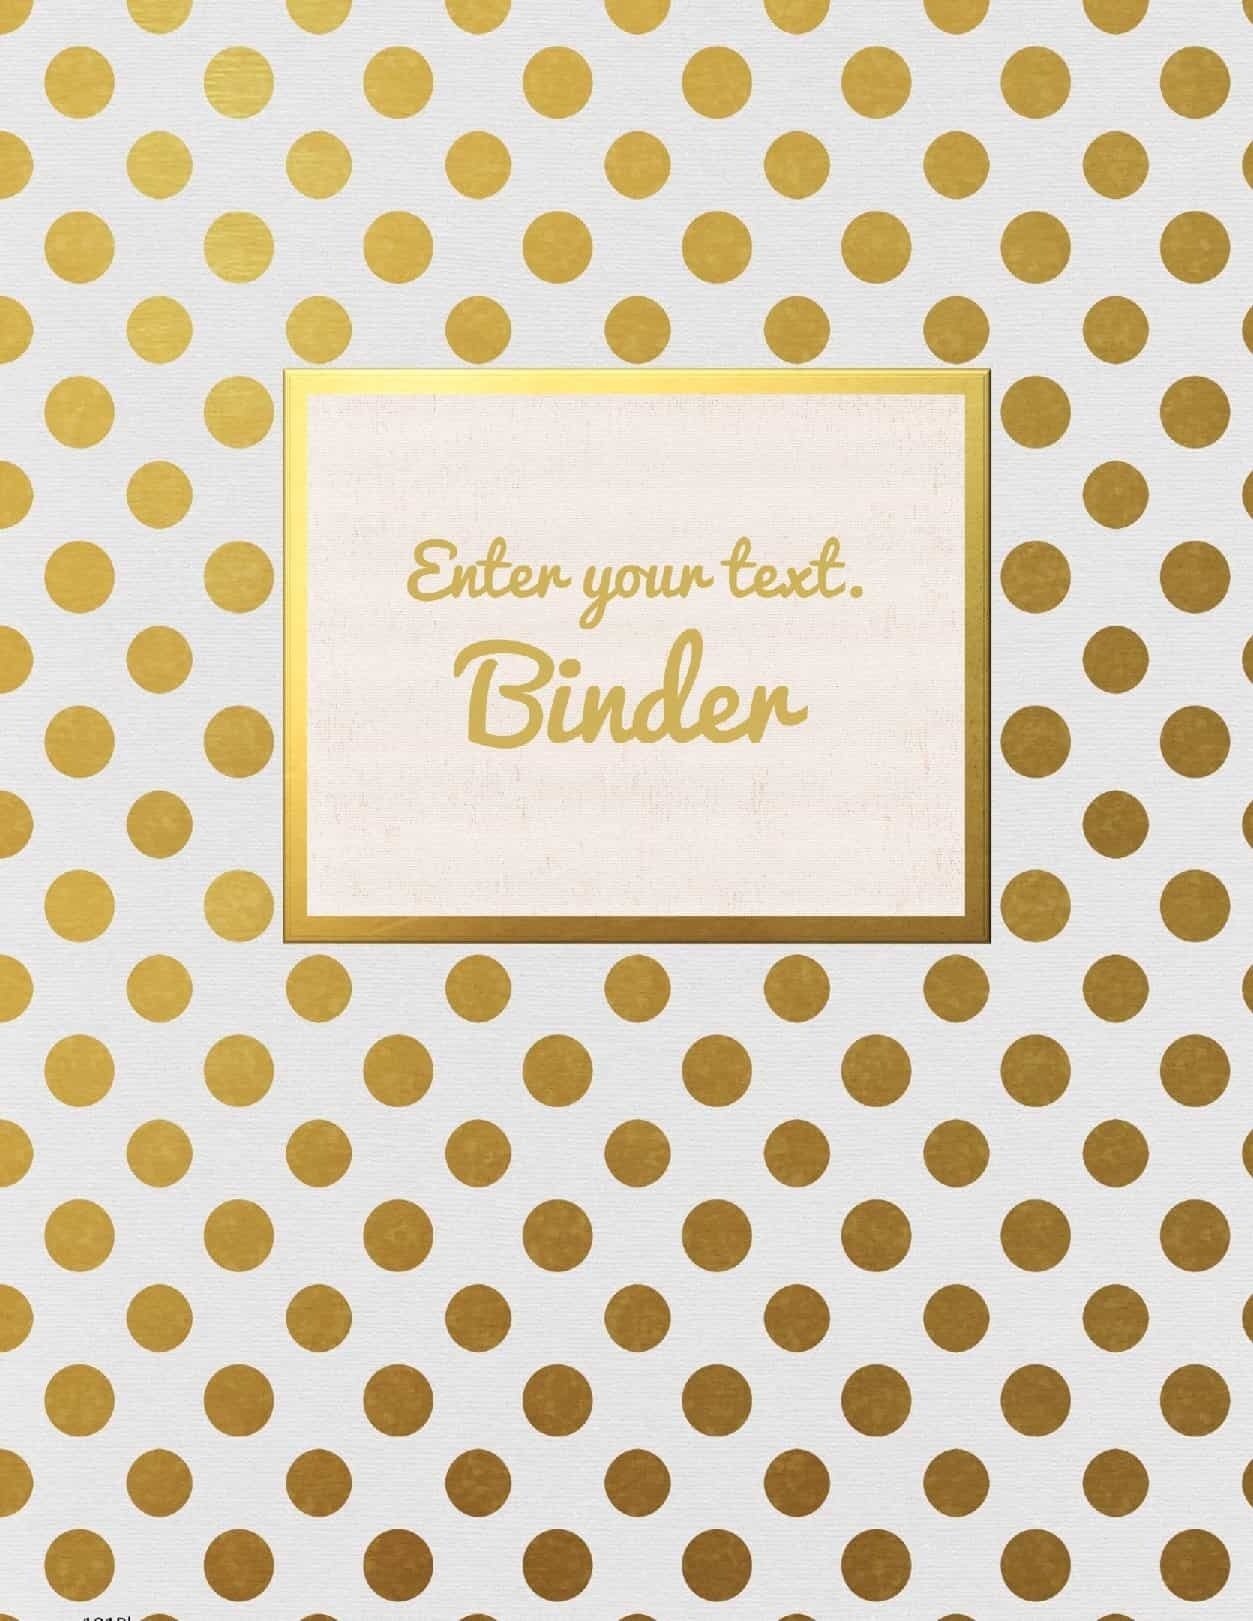 Free Binder Cover Templates | Customize Online & Print At Home | Free! - Free Printable Binder Covers